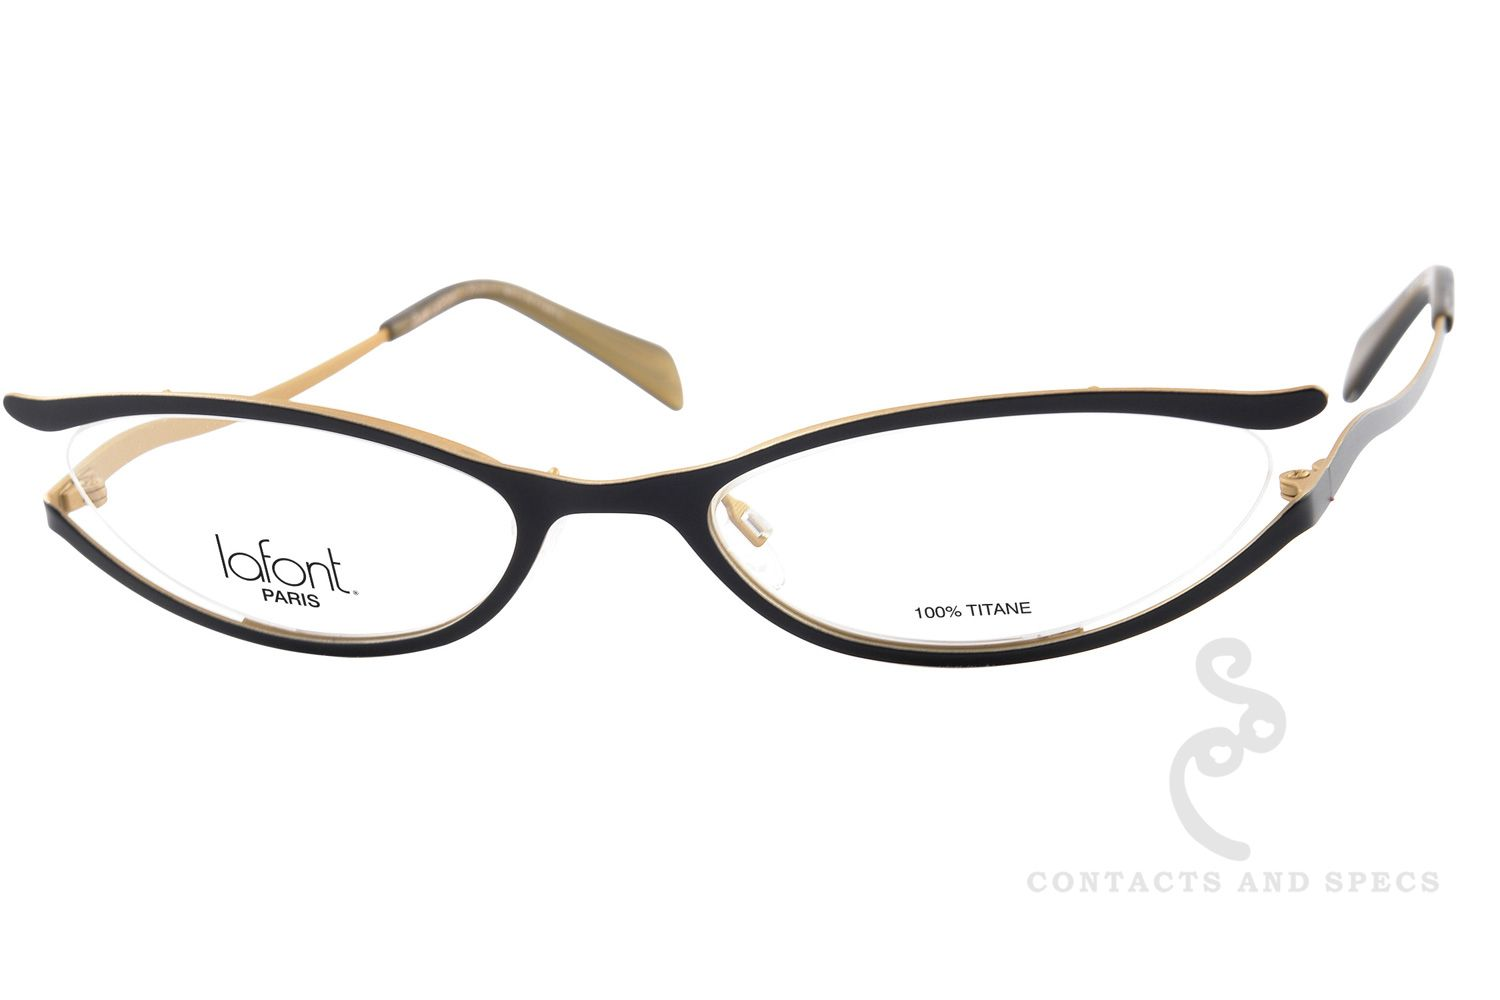 Jean lafont eyeglasses frames - Lafont Eyewear Scarlet Lafont Eyeglasses Designer Lafont Glasses Eyeglass Frames Contacts And